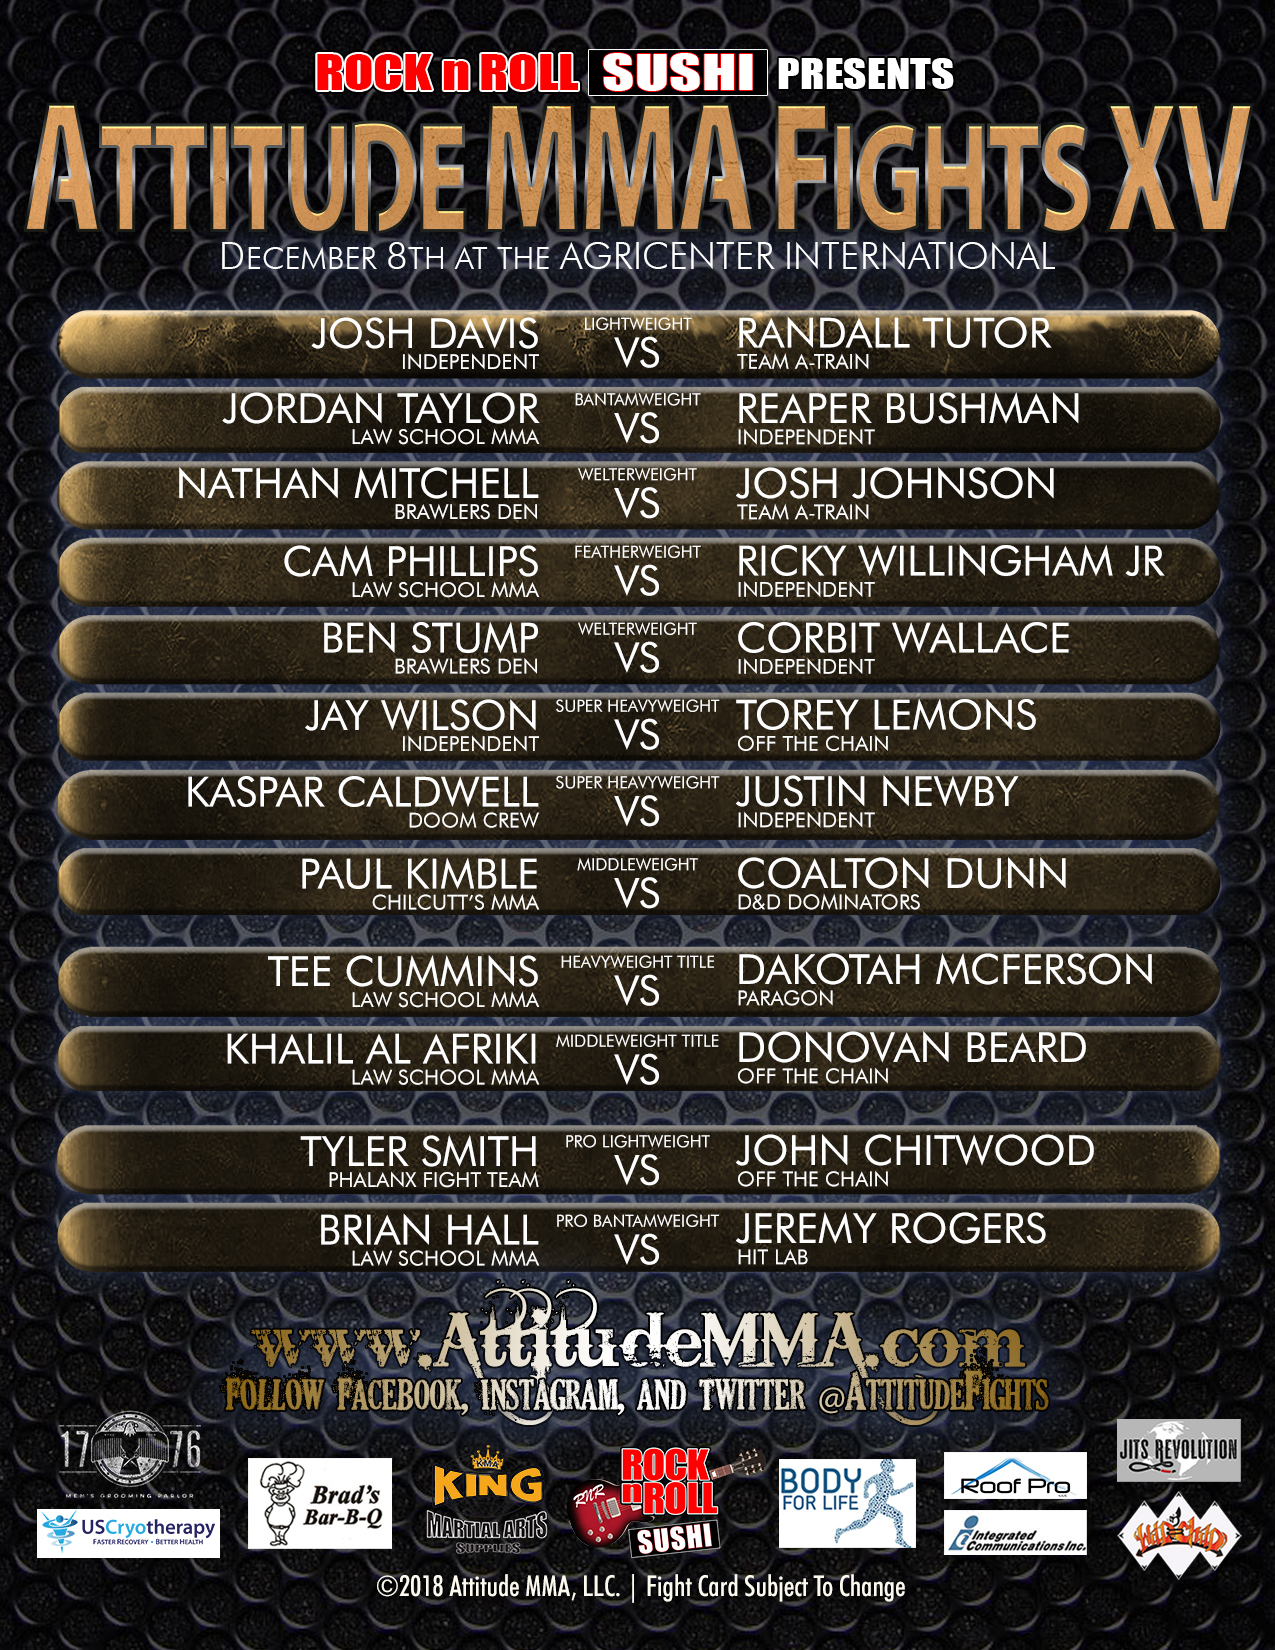 Official Fight Card to Attitude MMA Fights XV